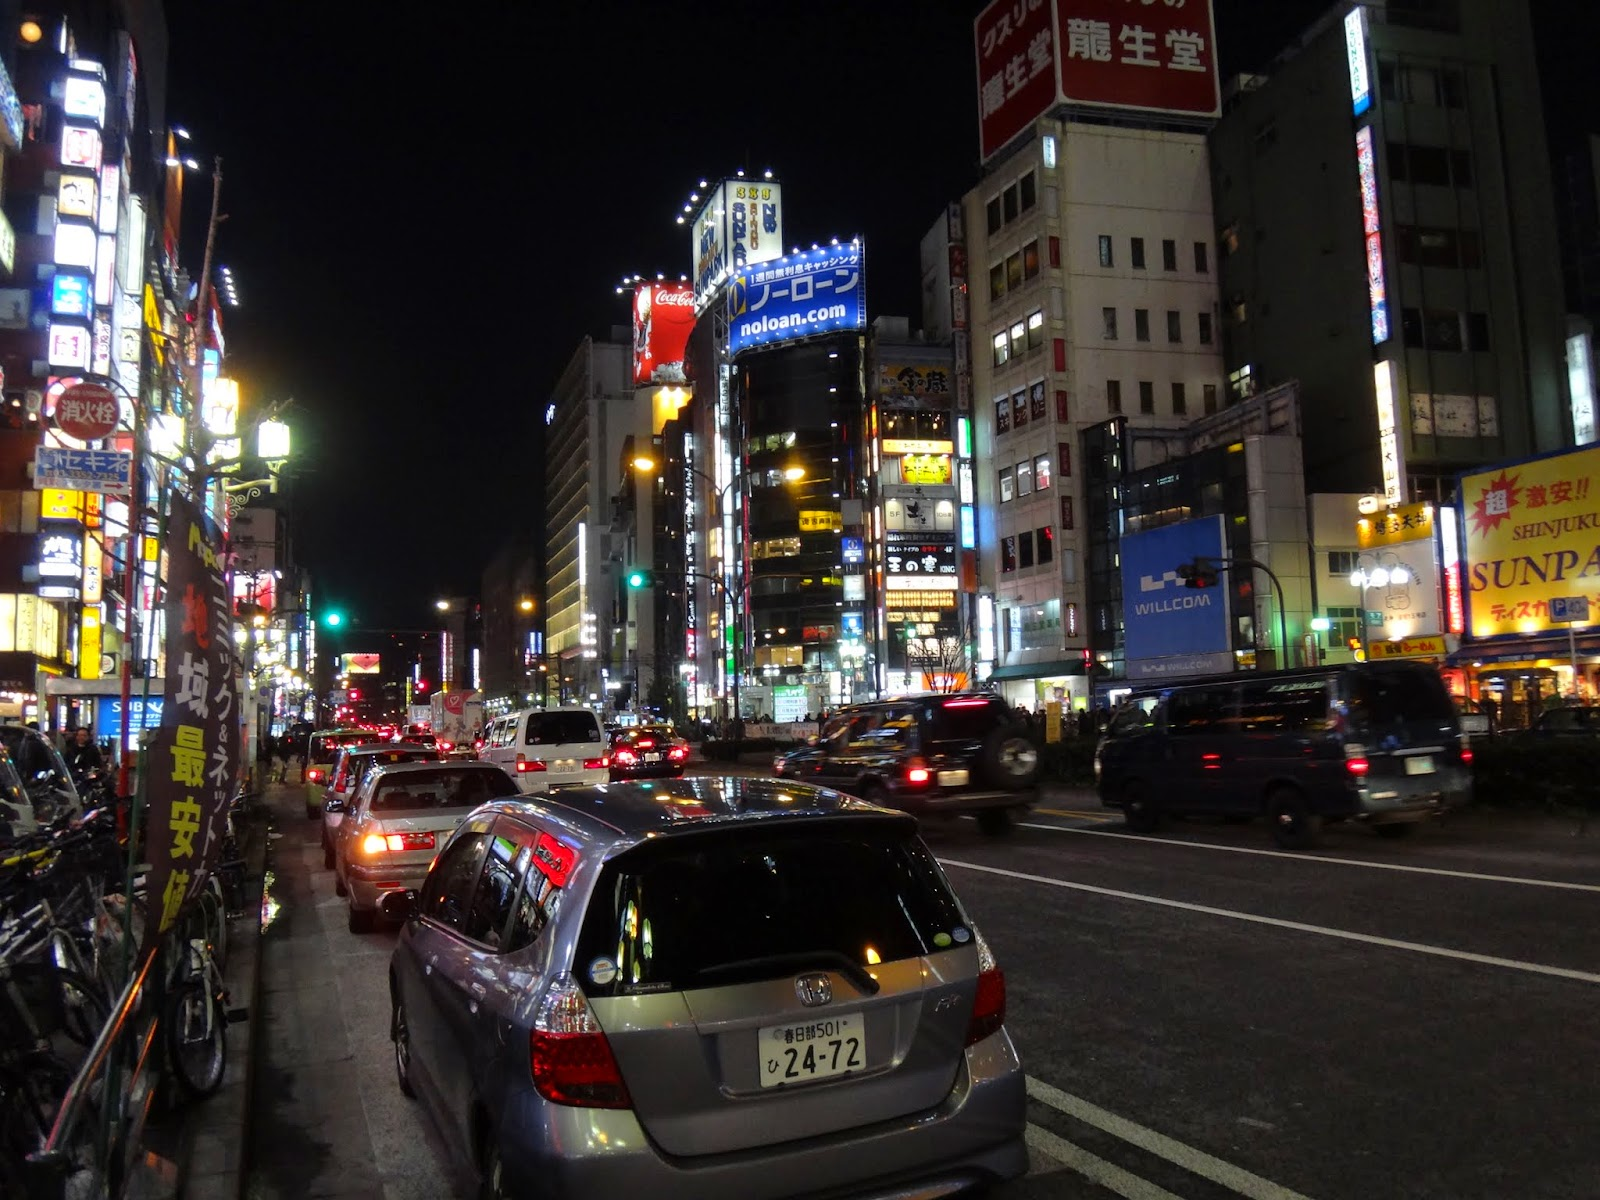 Busy night traffic with crowded people at Shinjuku city (Kabukicho) of Tokyo, Japan